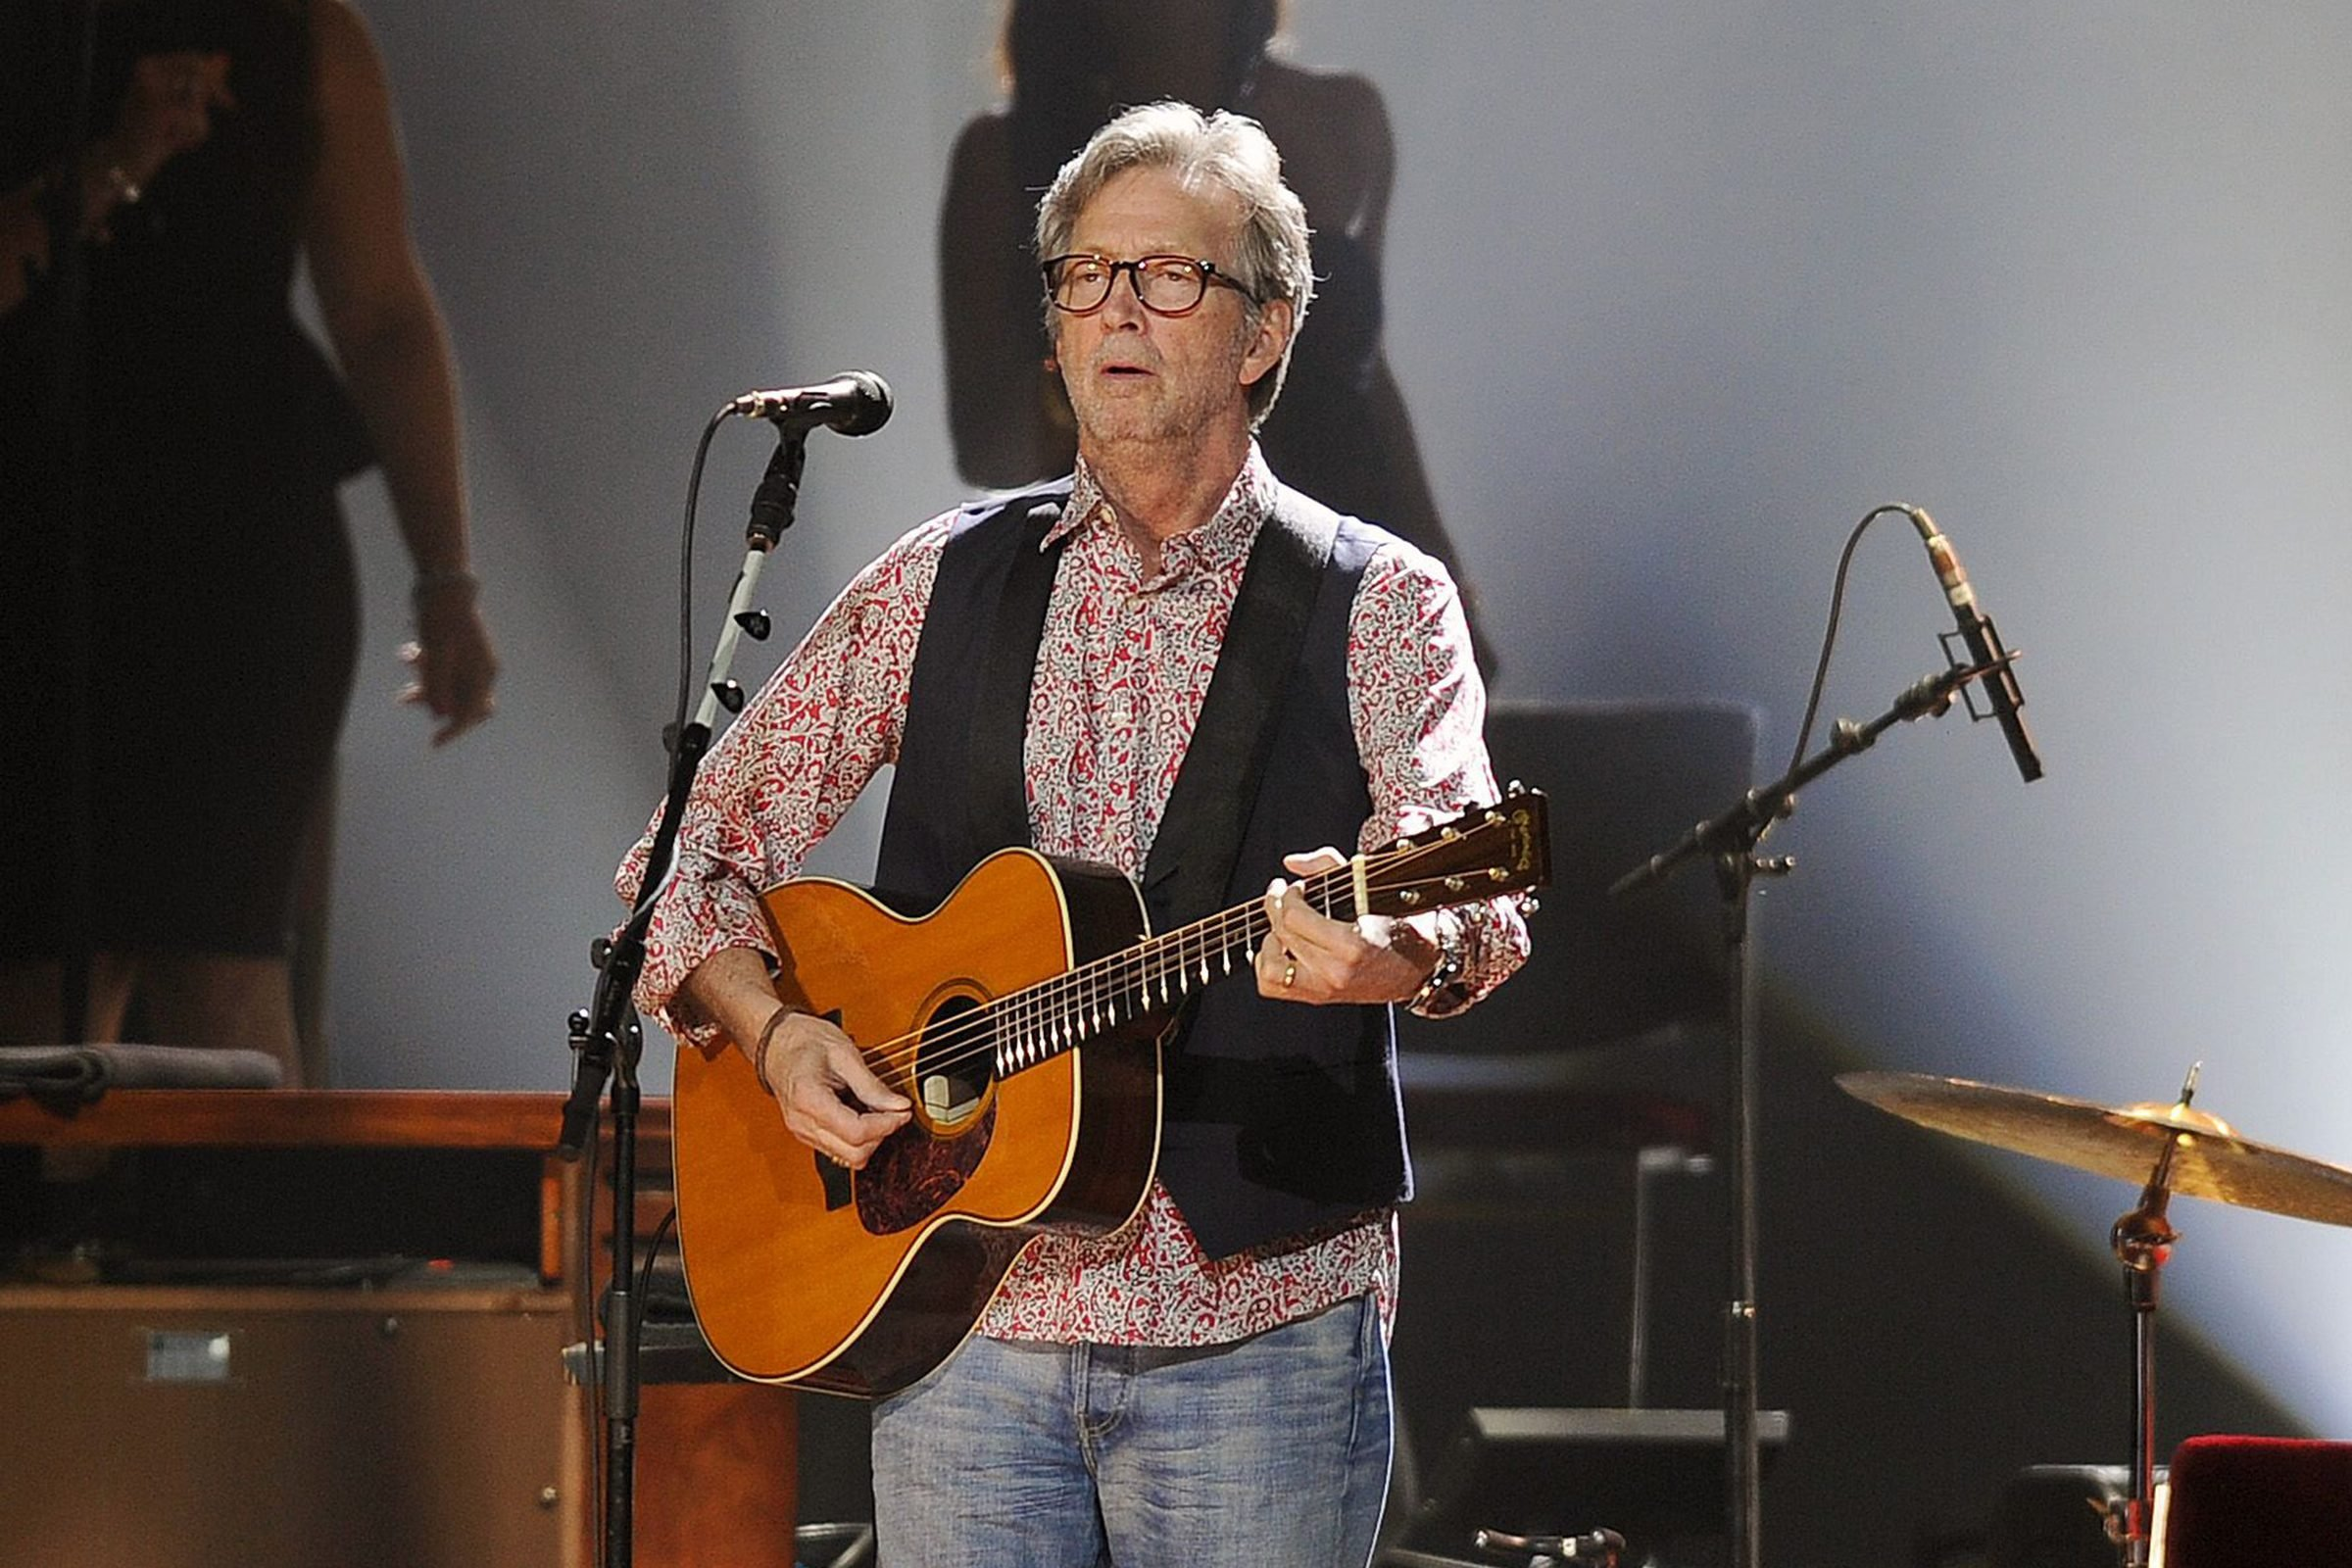 Mandatory Credit: Photo by Shutterstock (2229030f) Eric Clapton Eric Clapton in concert at Hard Rock Live, Florida, America - 30 Mar 2013